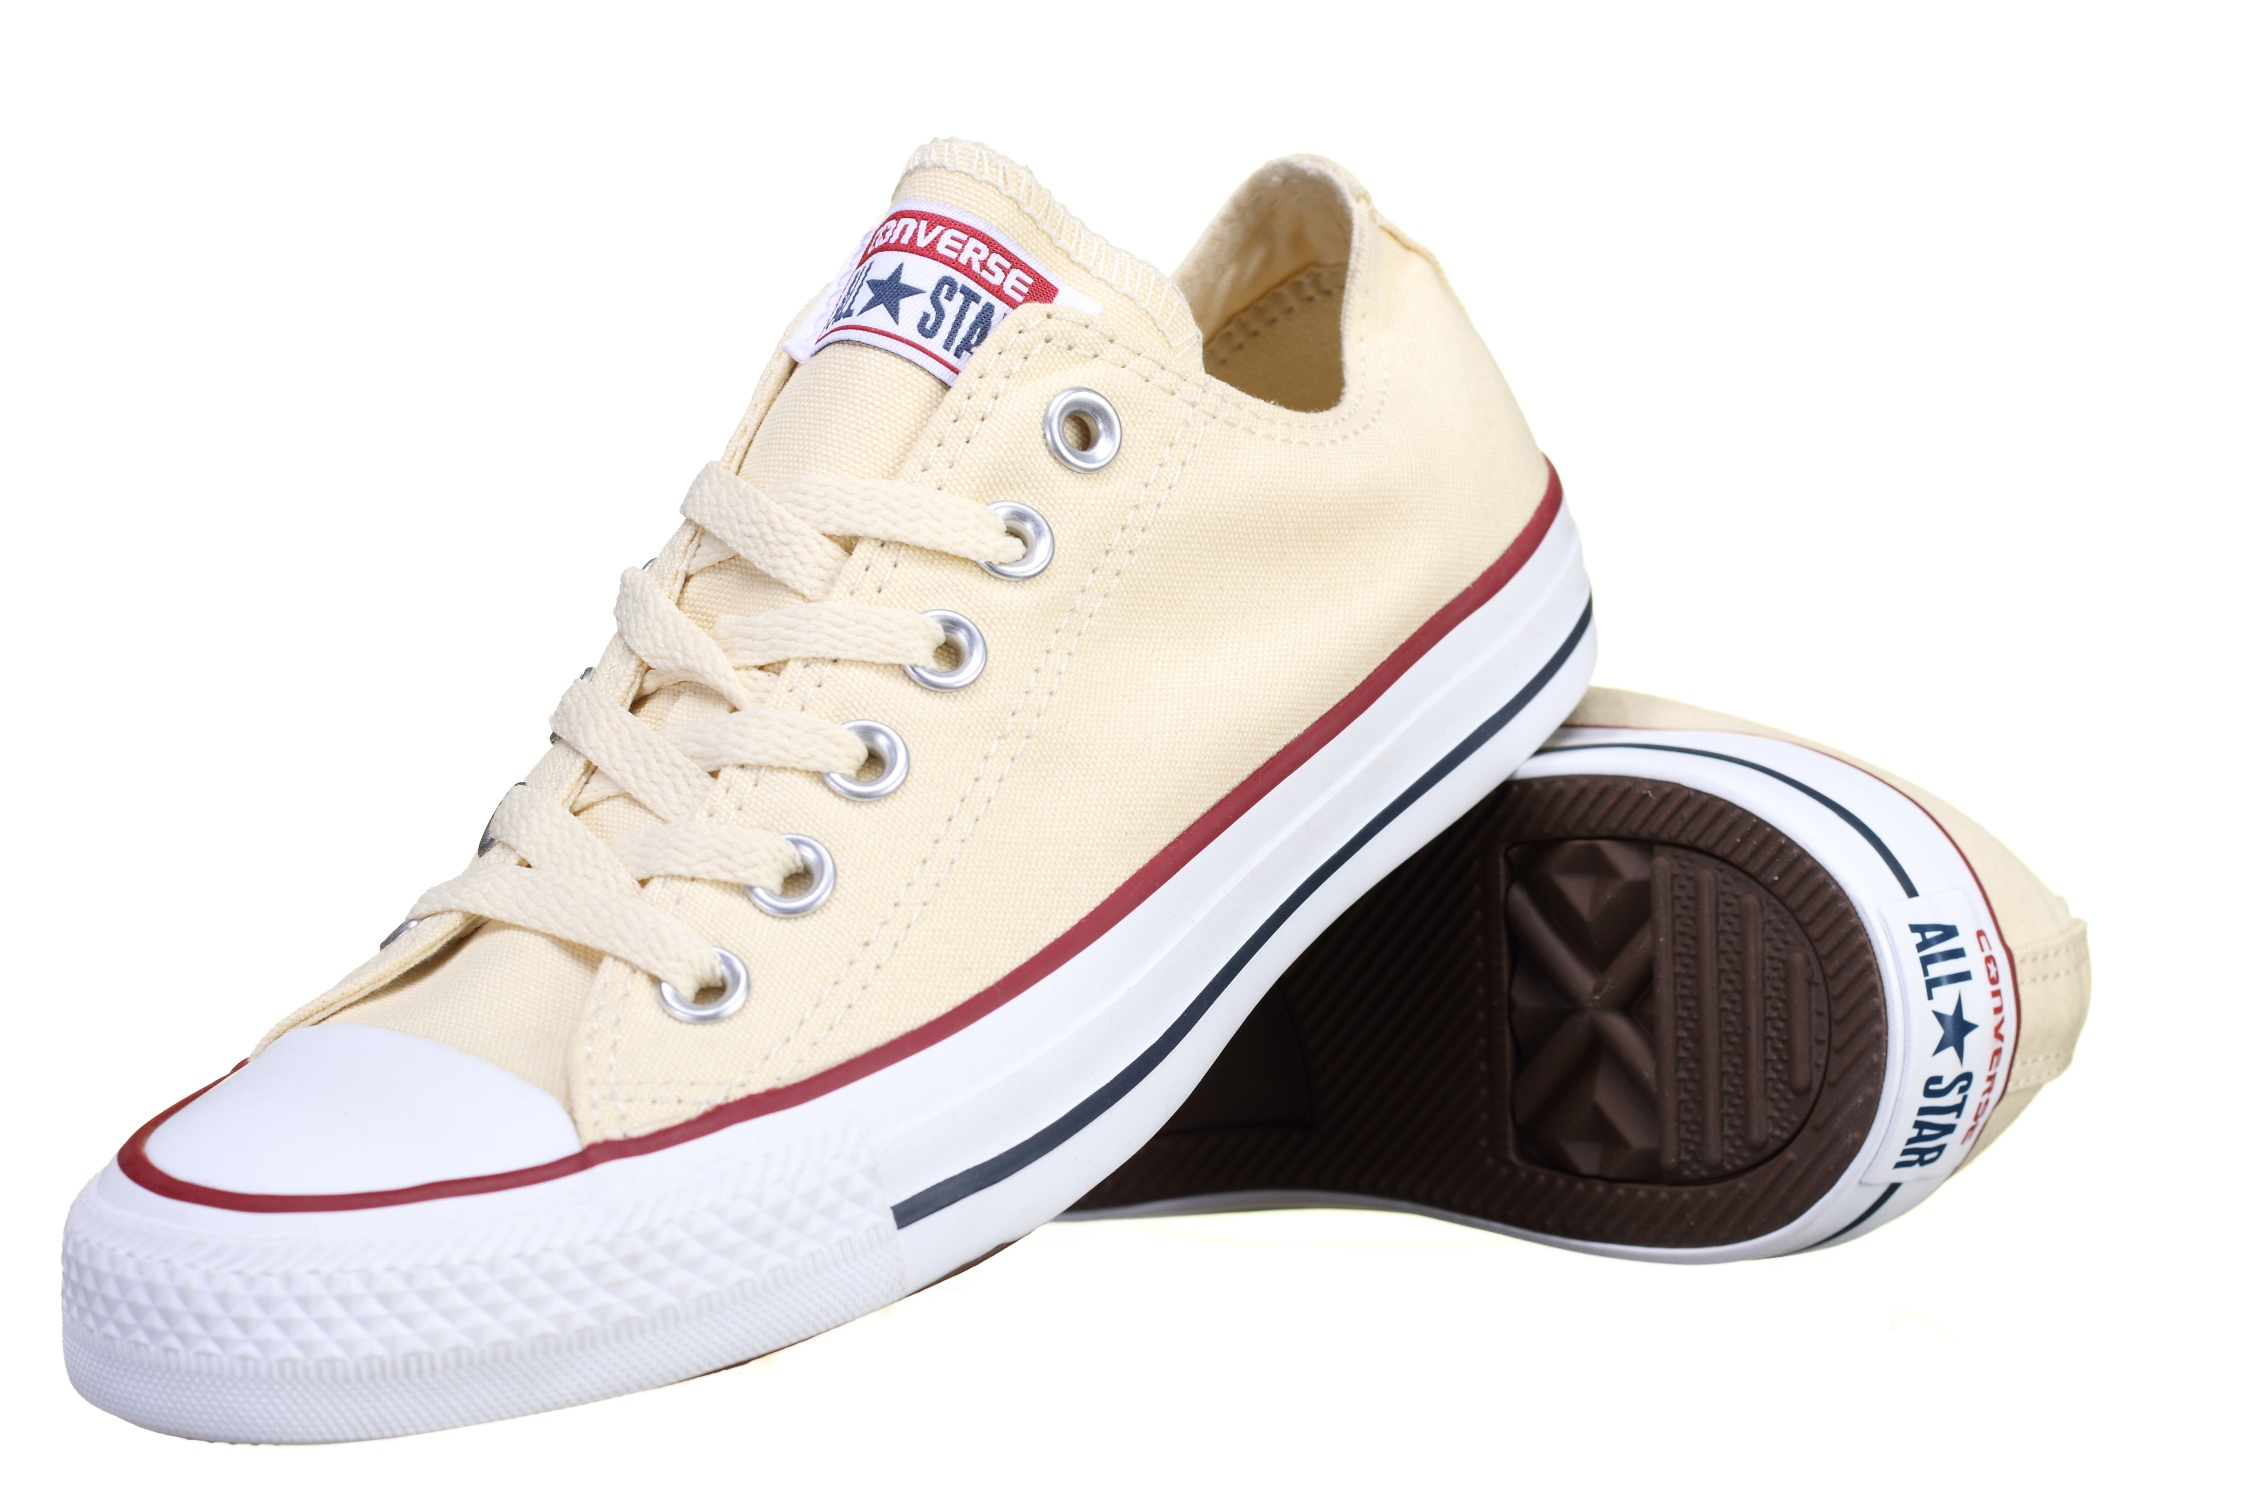 http://www.leadermode.com/108606/converse-all-star-ox-m9165c-v2-jaune.jpg